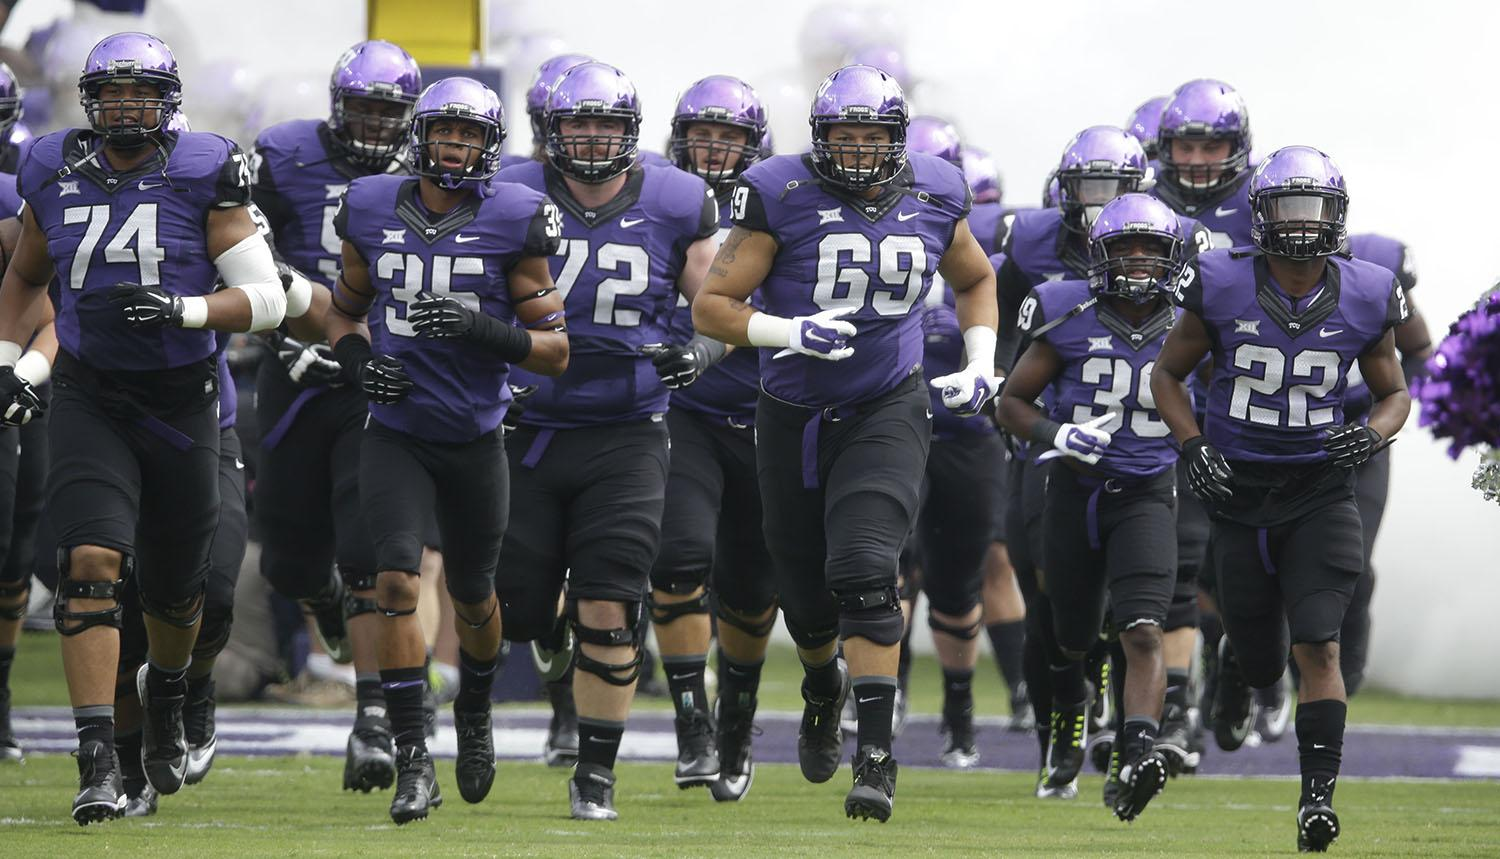 TCU players take the field  before an NCAA college football game, Saturday, Sept. 13, 2014, in Fort Worth, Texas. (AP Photo/LM Otero)